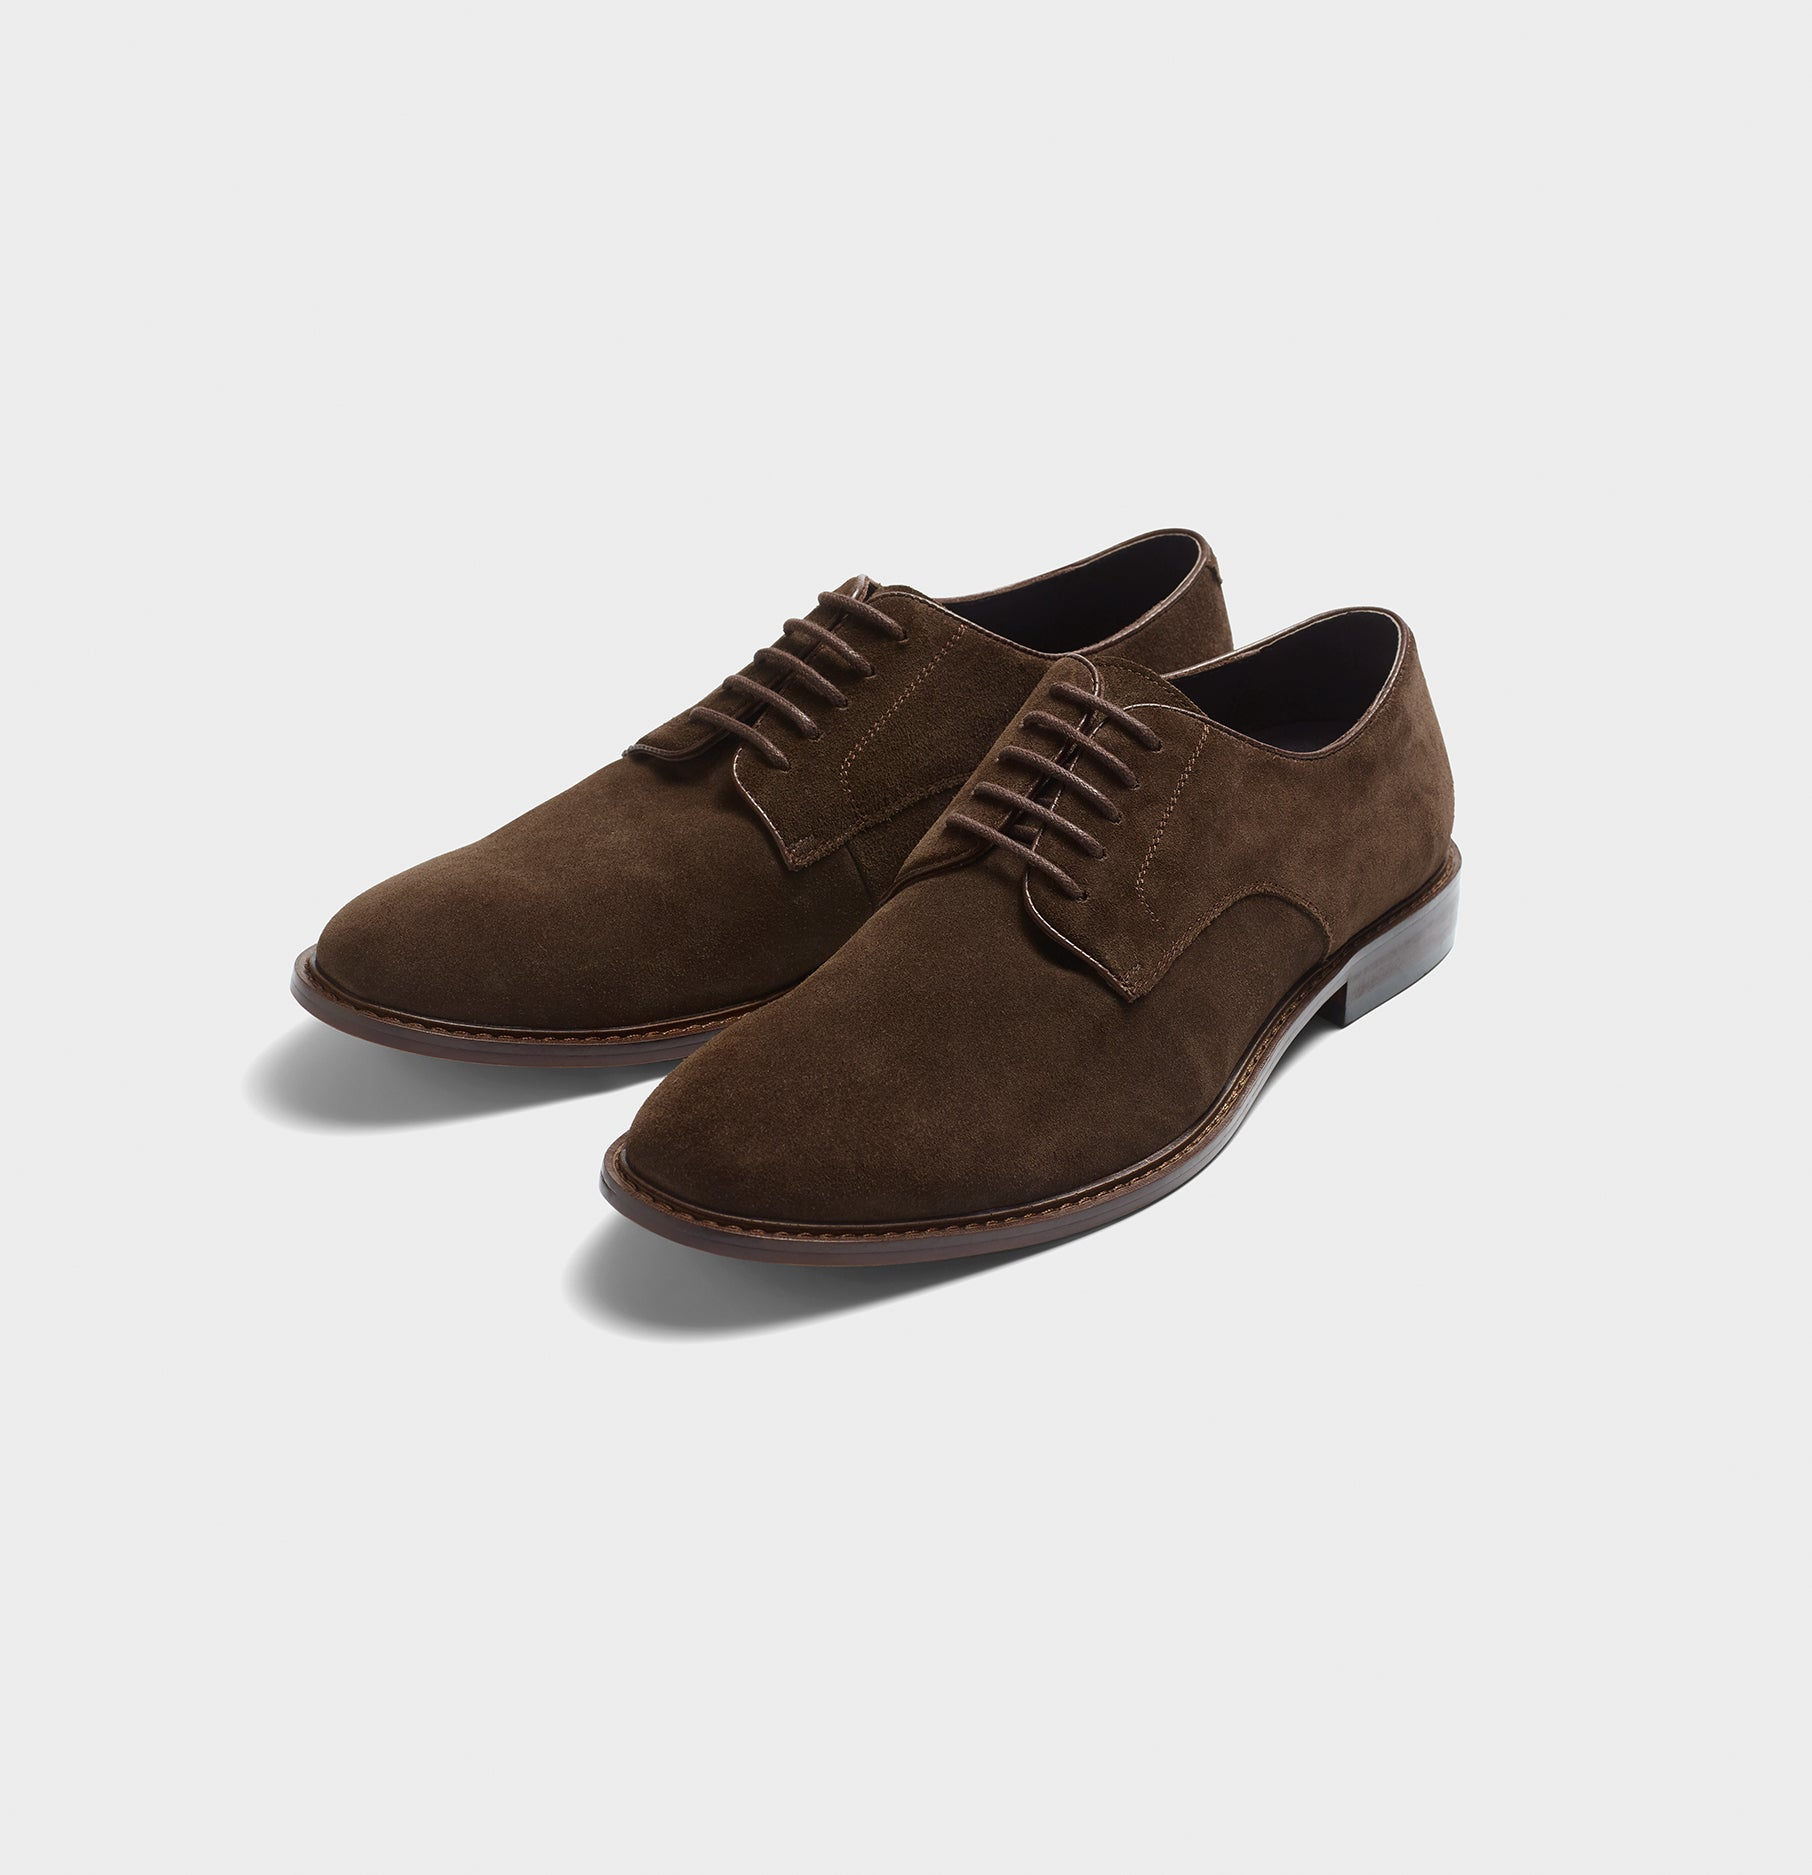 b0c03e58422c6 Brown Suede Shoes